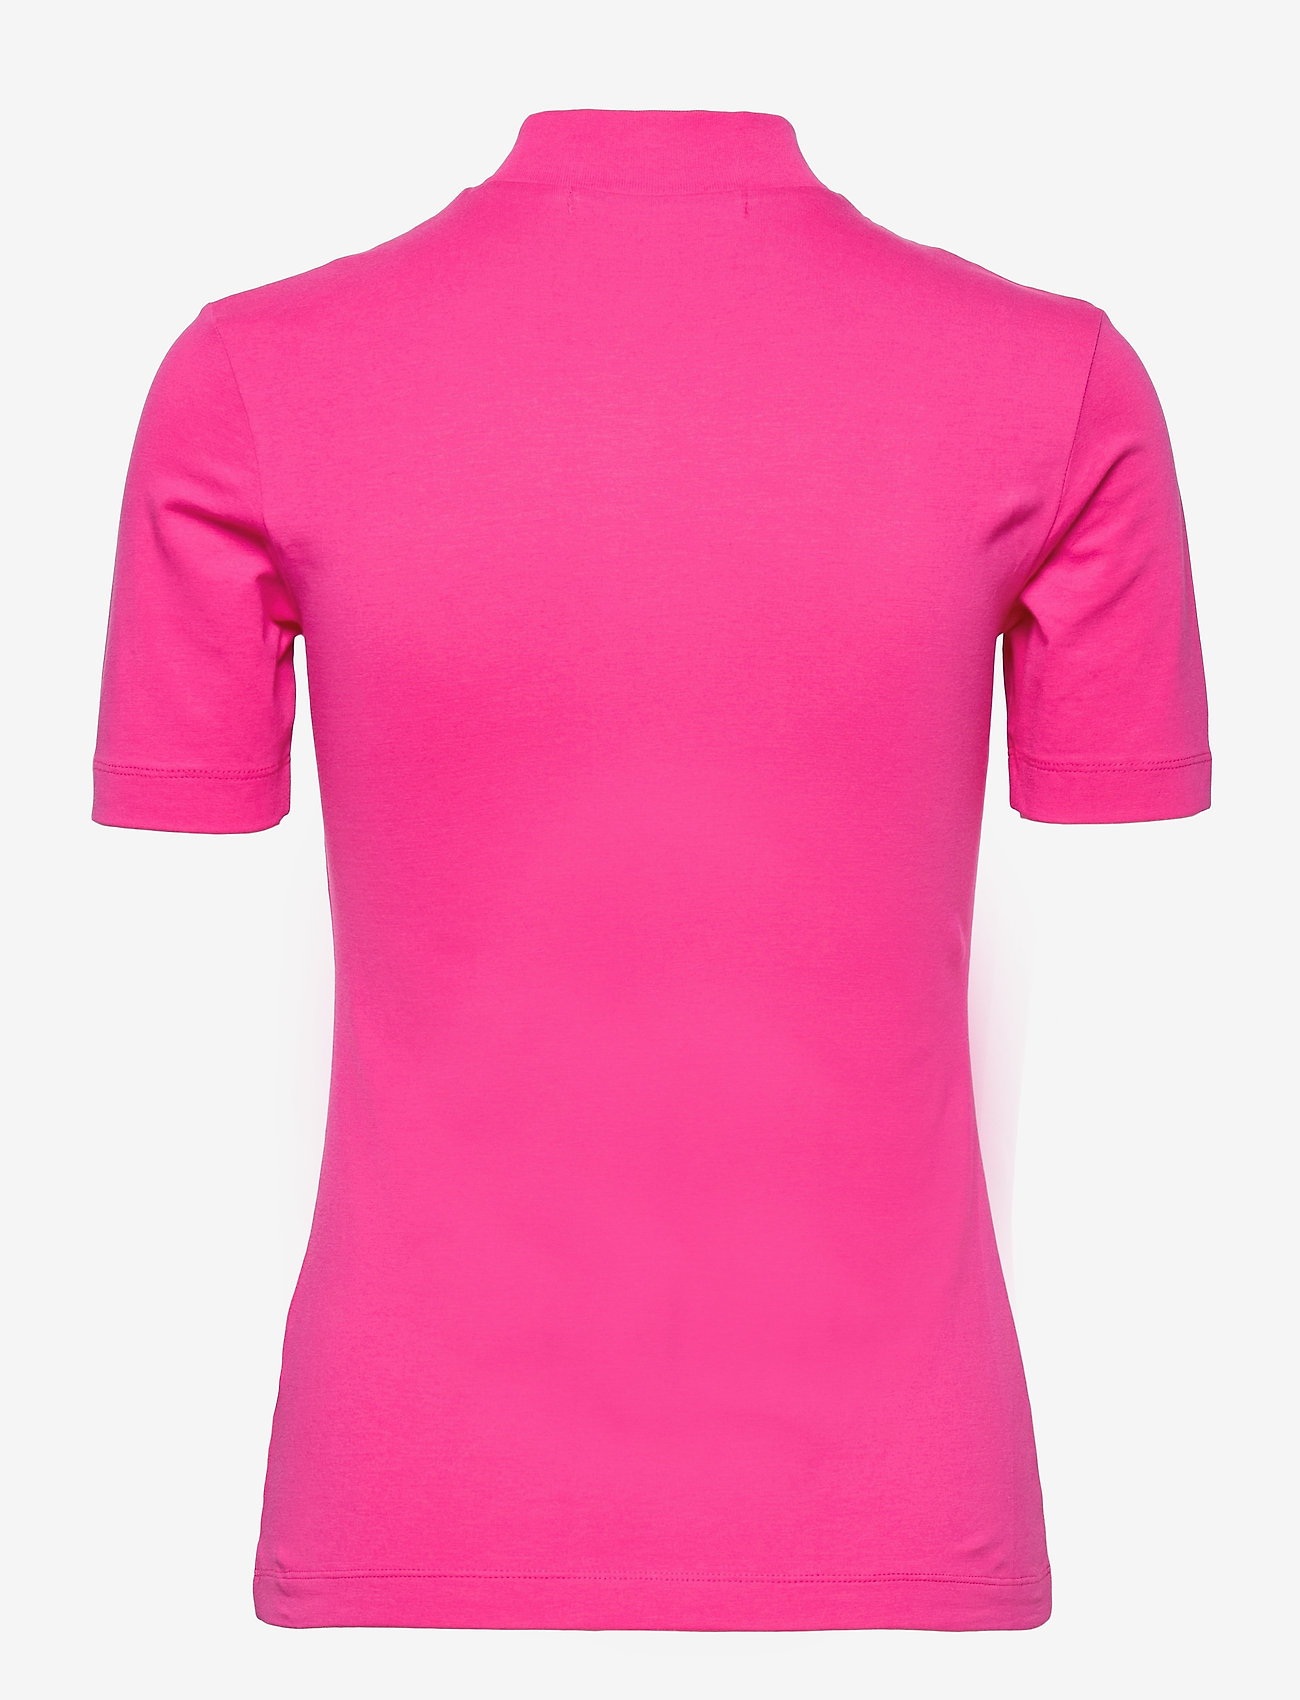 Calvin Klein Jeans - MICRO BRANDING STRETCH MOCK NECK - t-shirts - party pink - 1